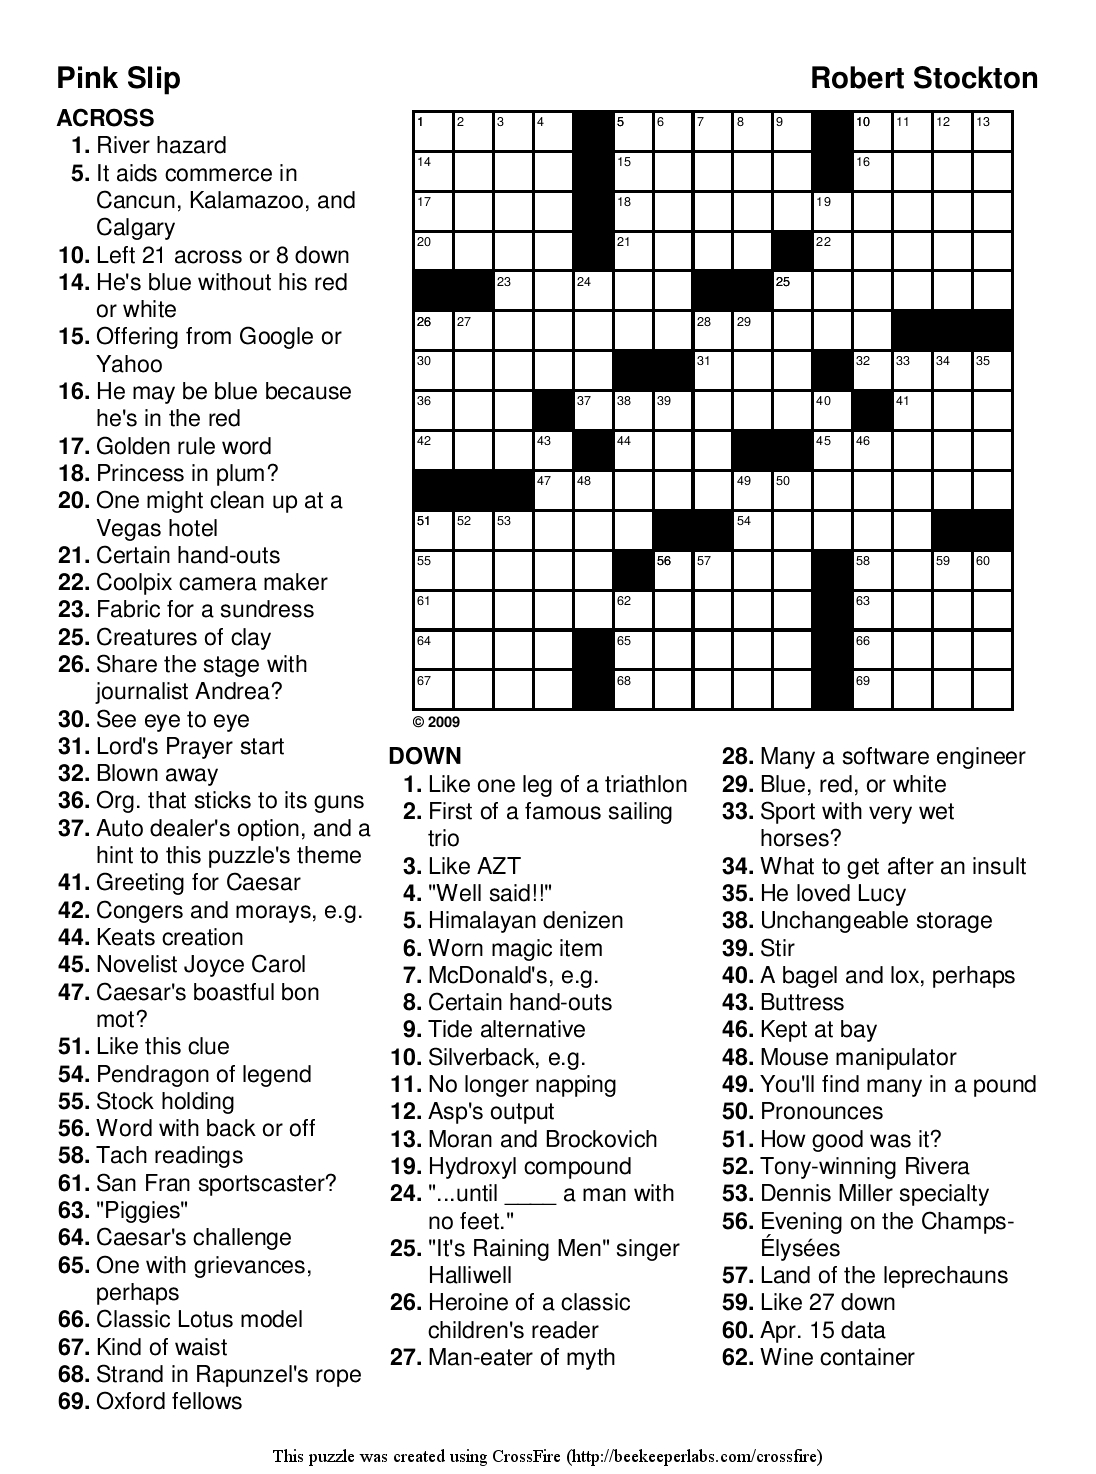 Printable Puzzles For Adults | Easy Word Puzzles Printable Festivals - Free Easy Printable Crossword Puzzles For Adults